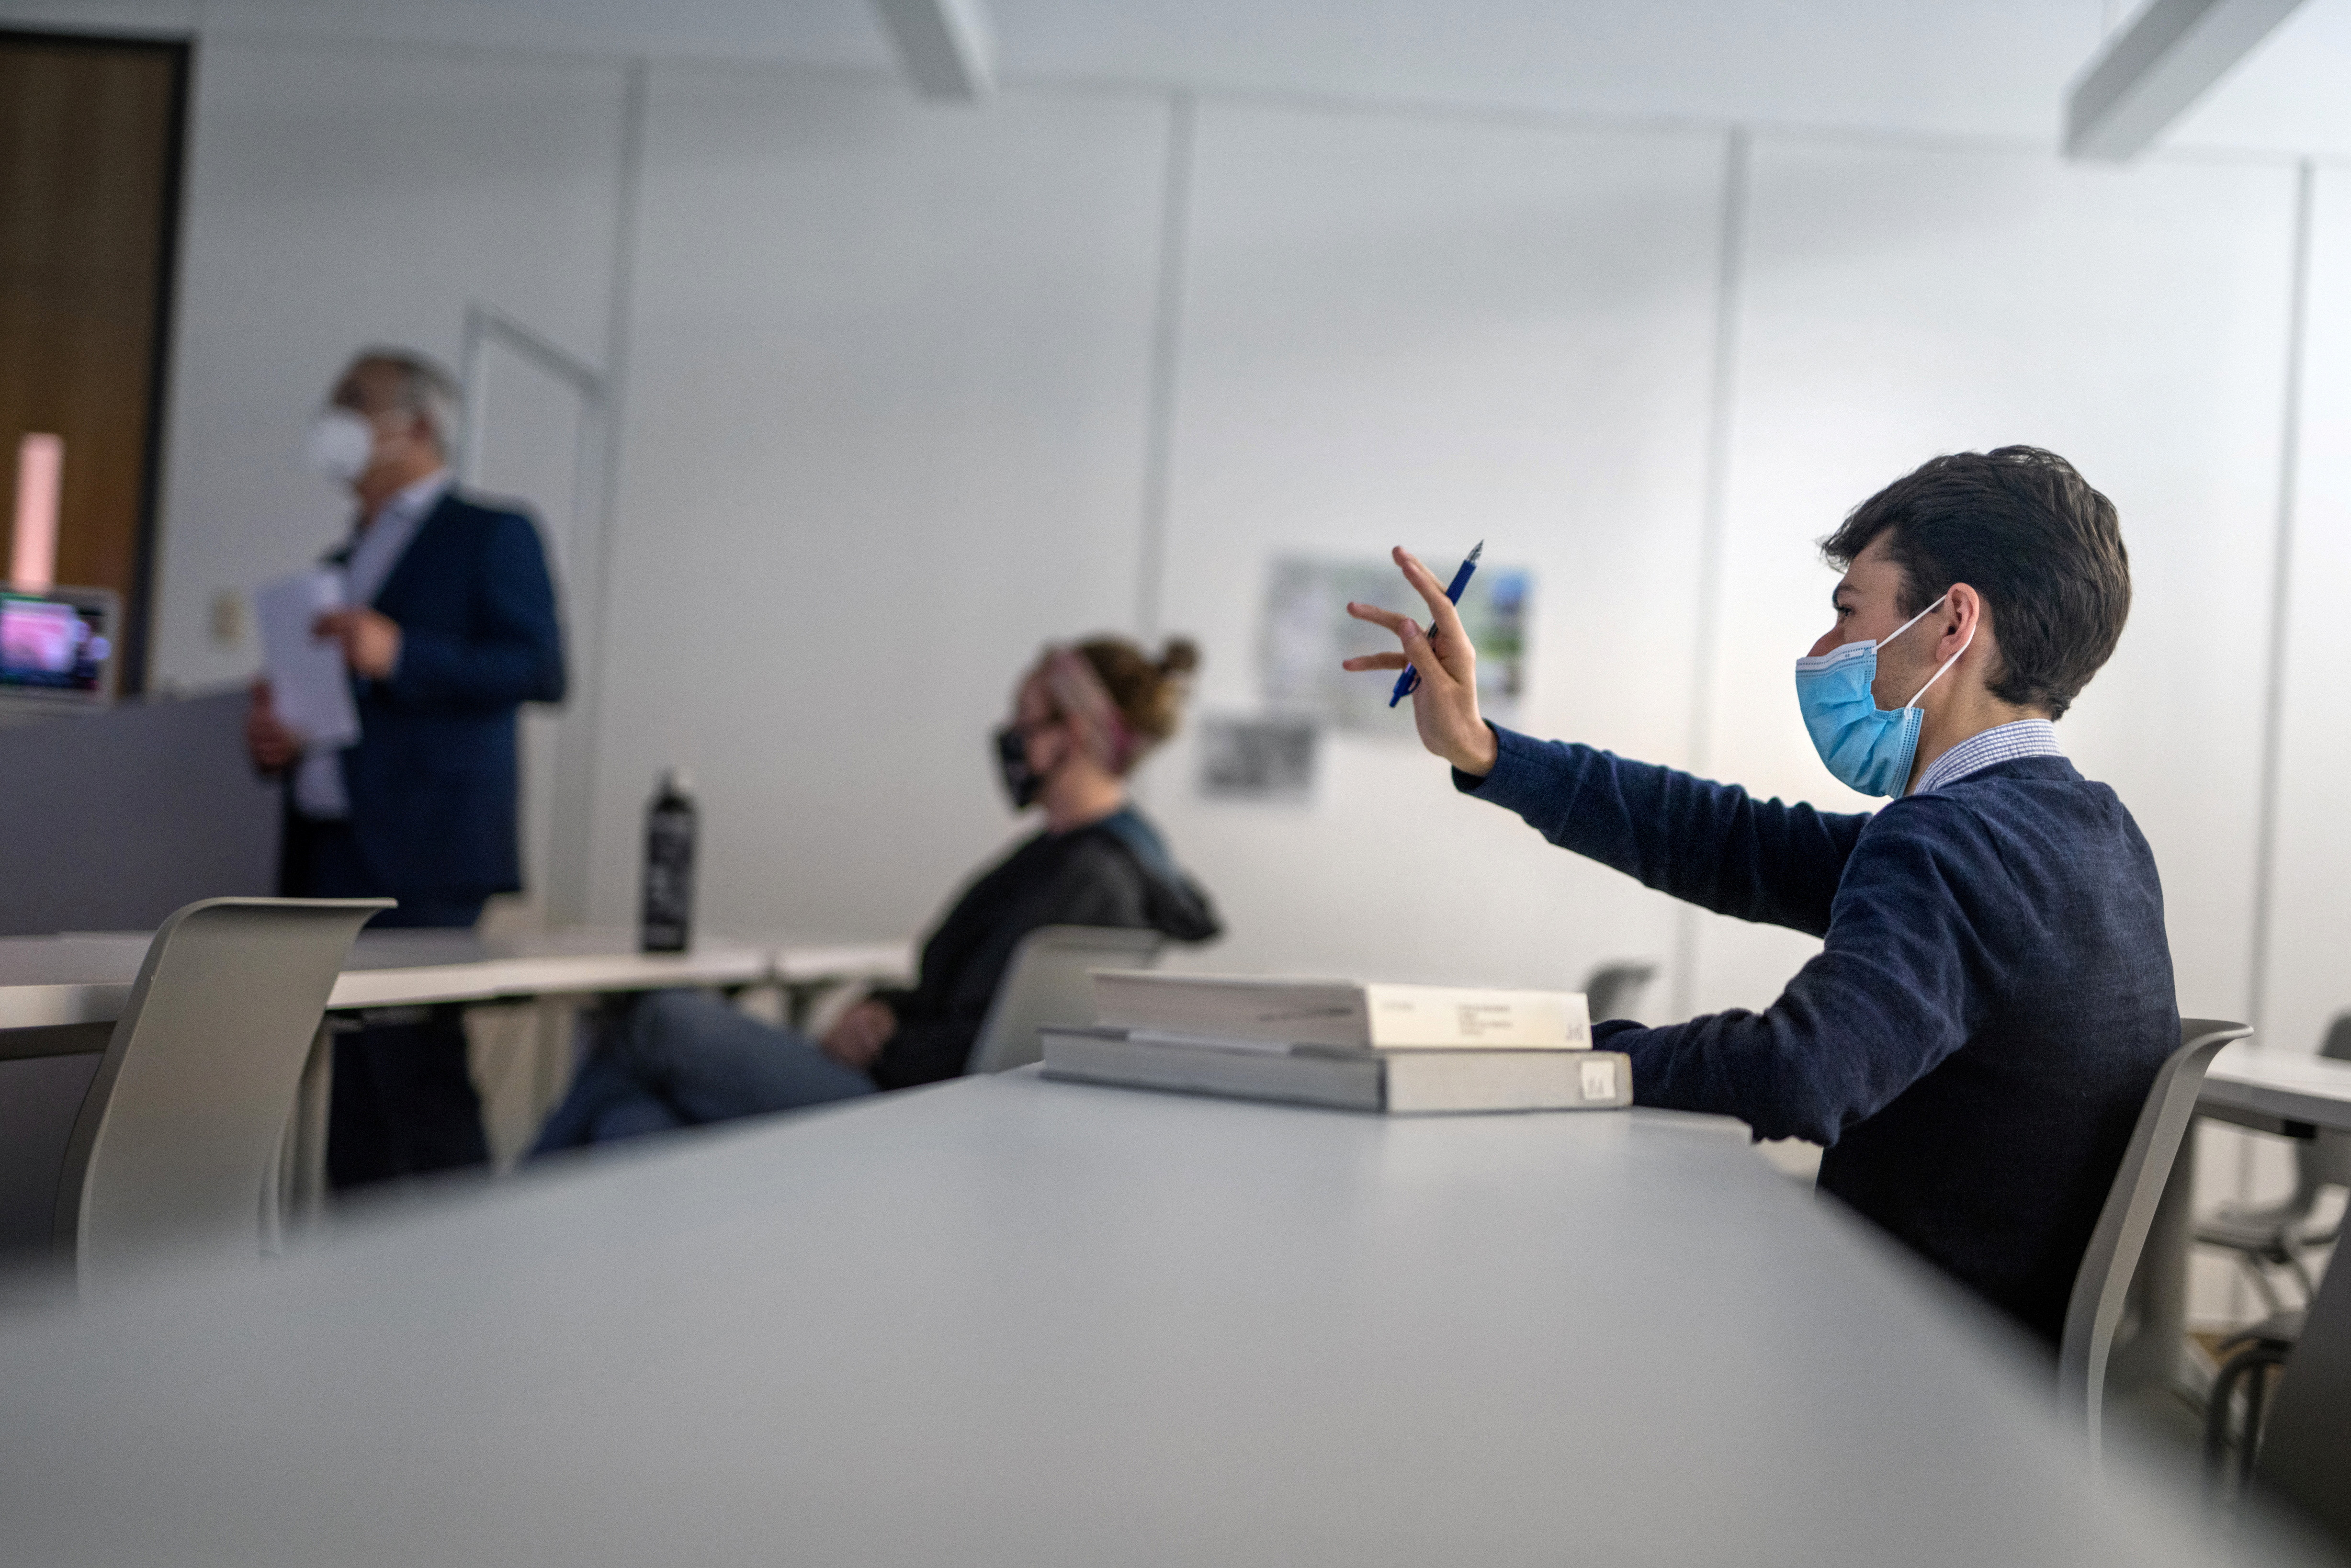 President of the College Republicans at LSU Ben Smith attends an art history class taught by Ludovico Geymonat (L) at Louisiana State University in Baton Rouge, Louisiana, U.S., April 13, 2021.  REUTERS/Kathleen Flynn